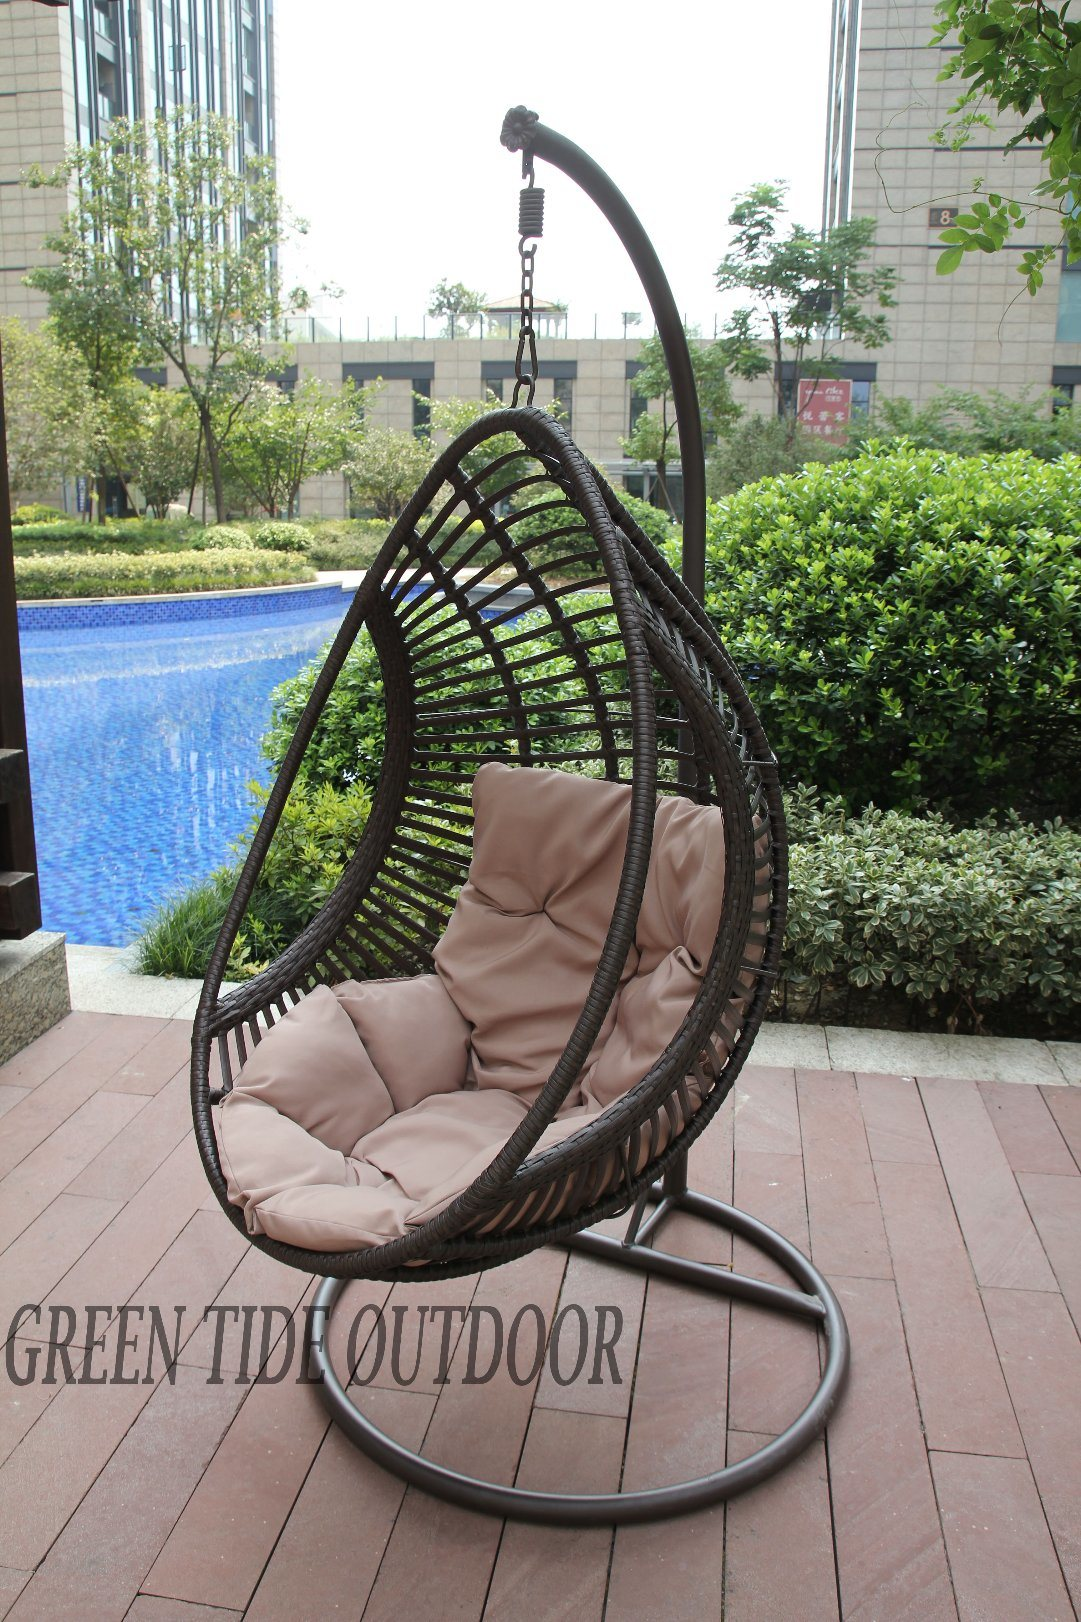 China Outdoor Garden Patio Home Furniture Rattan Drop